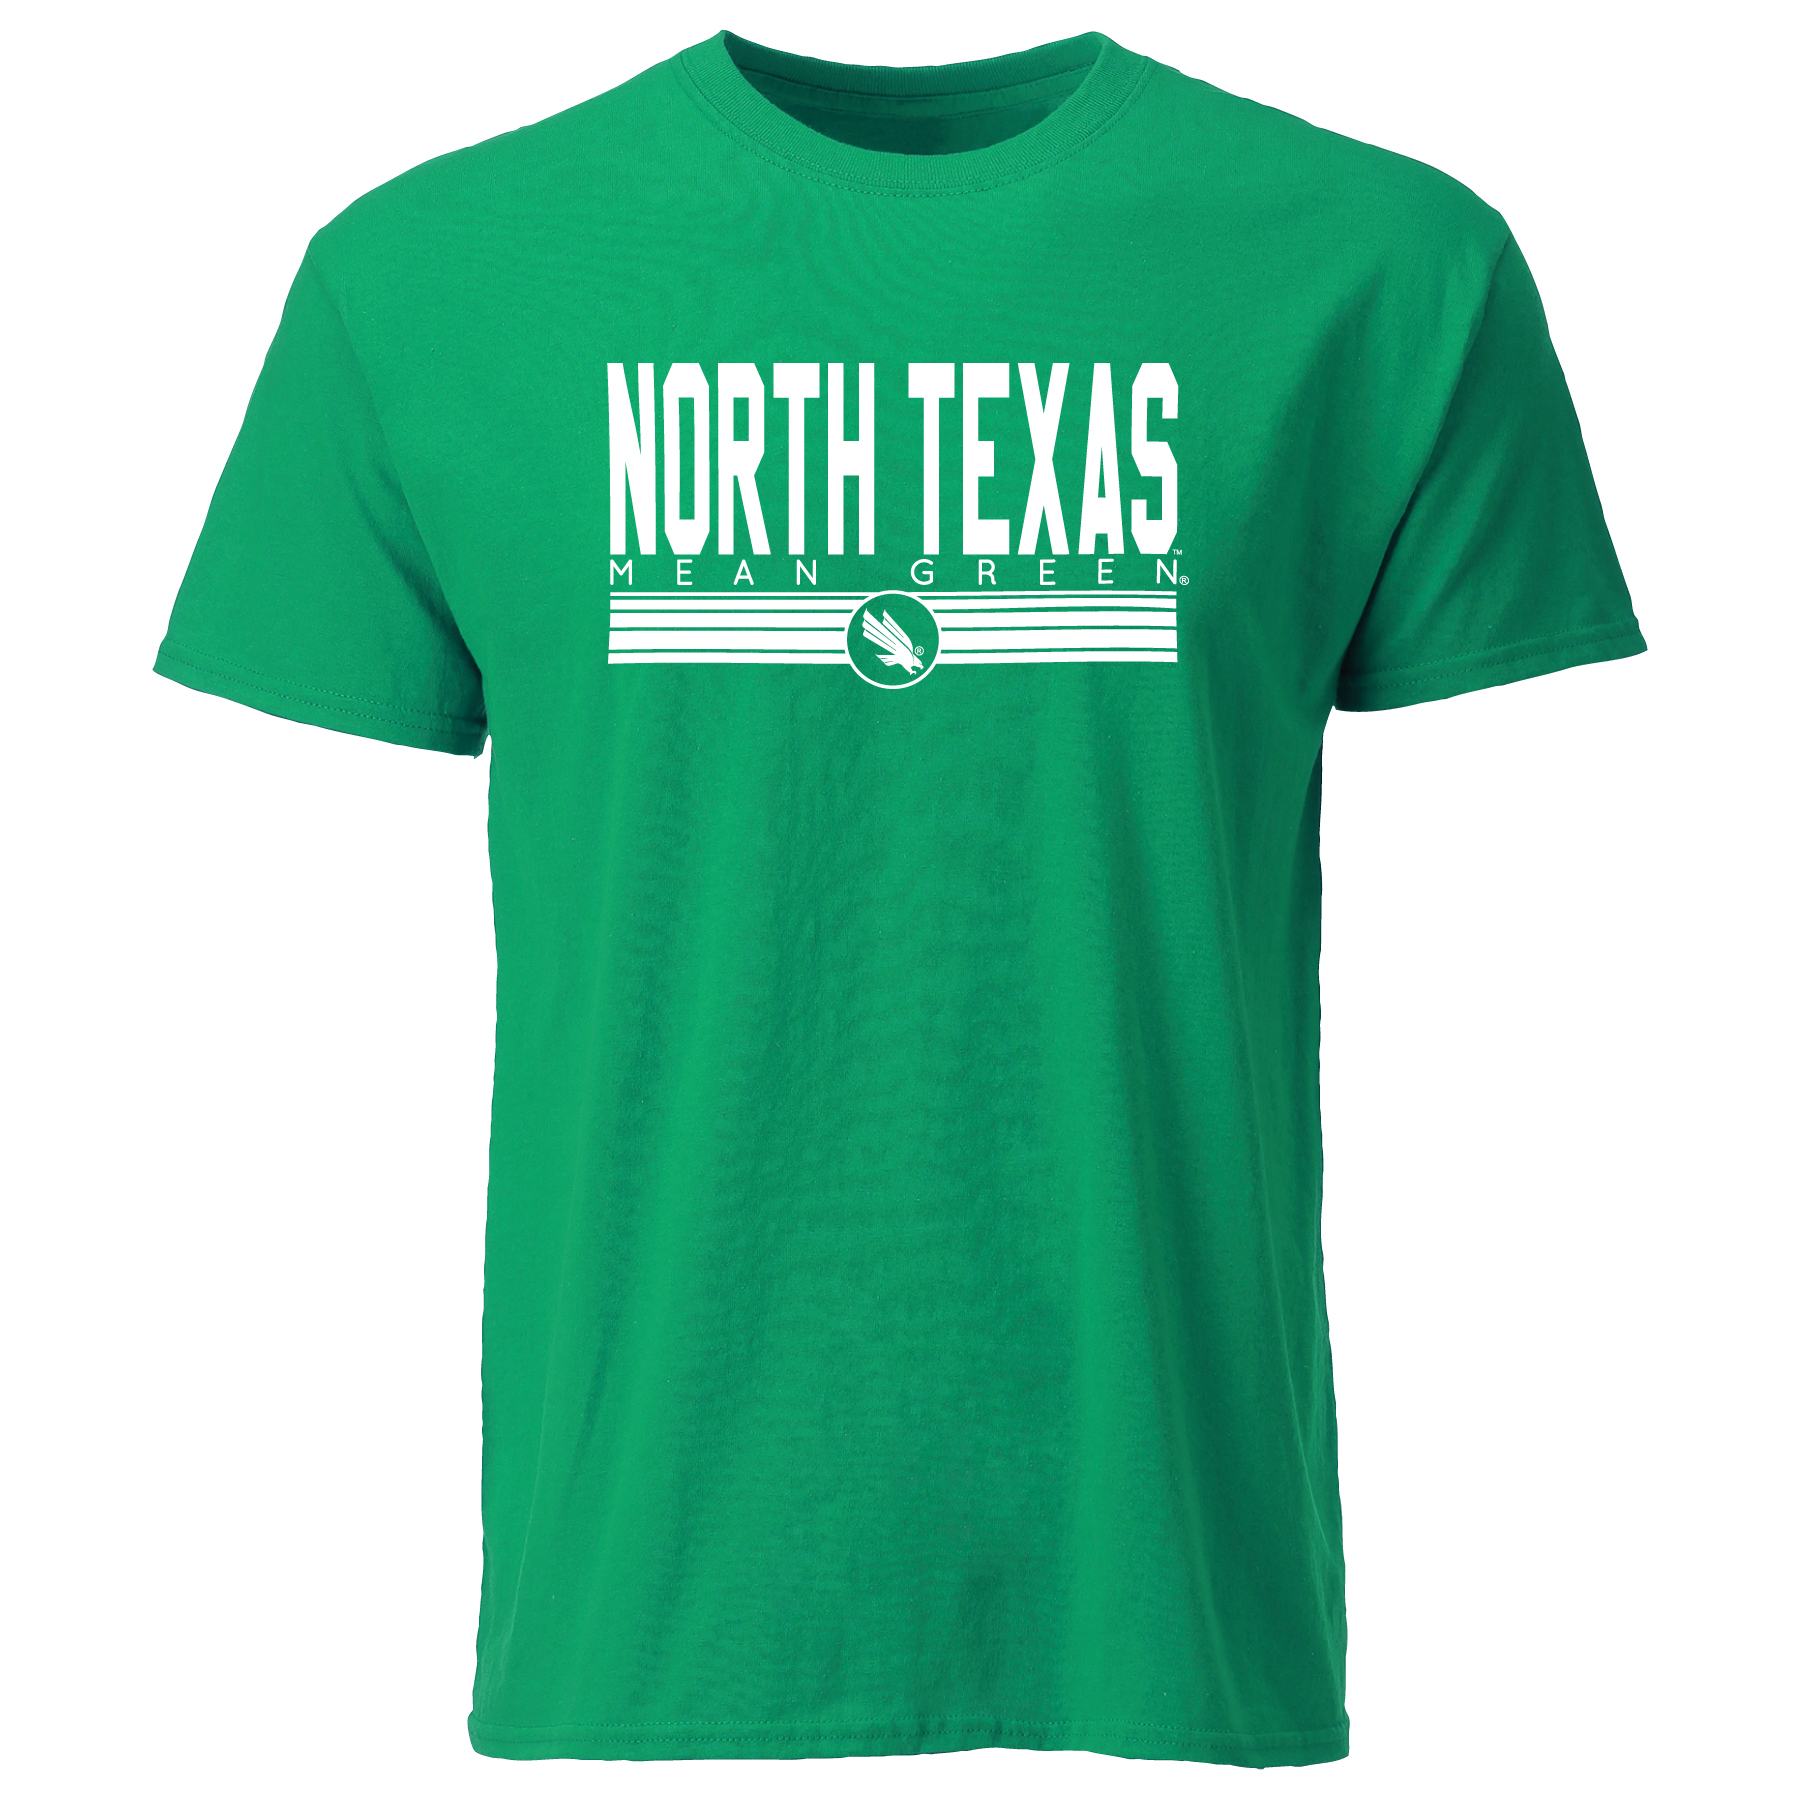 STRIPED NORTH TEXAS TEE